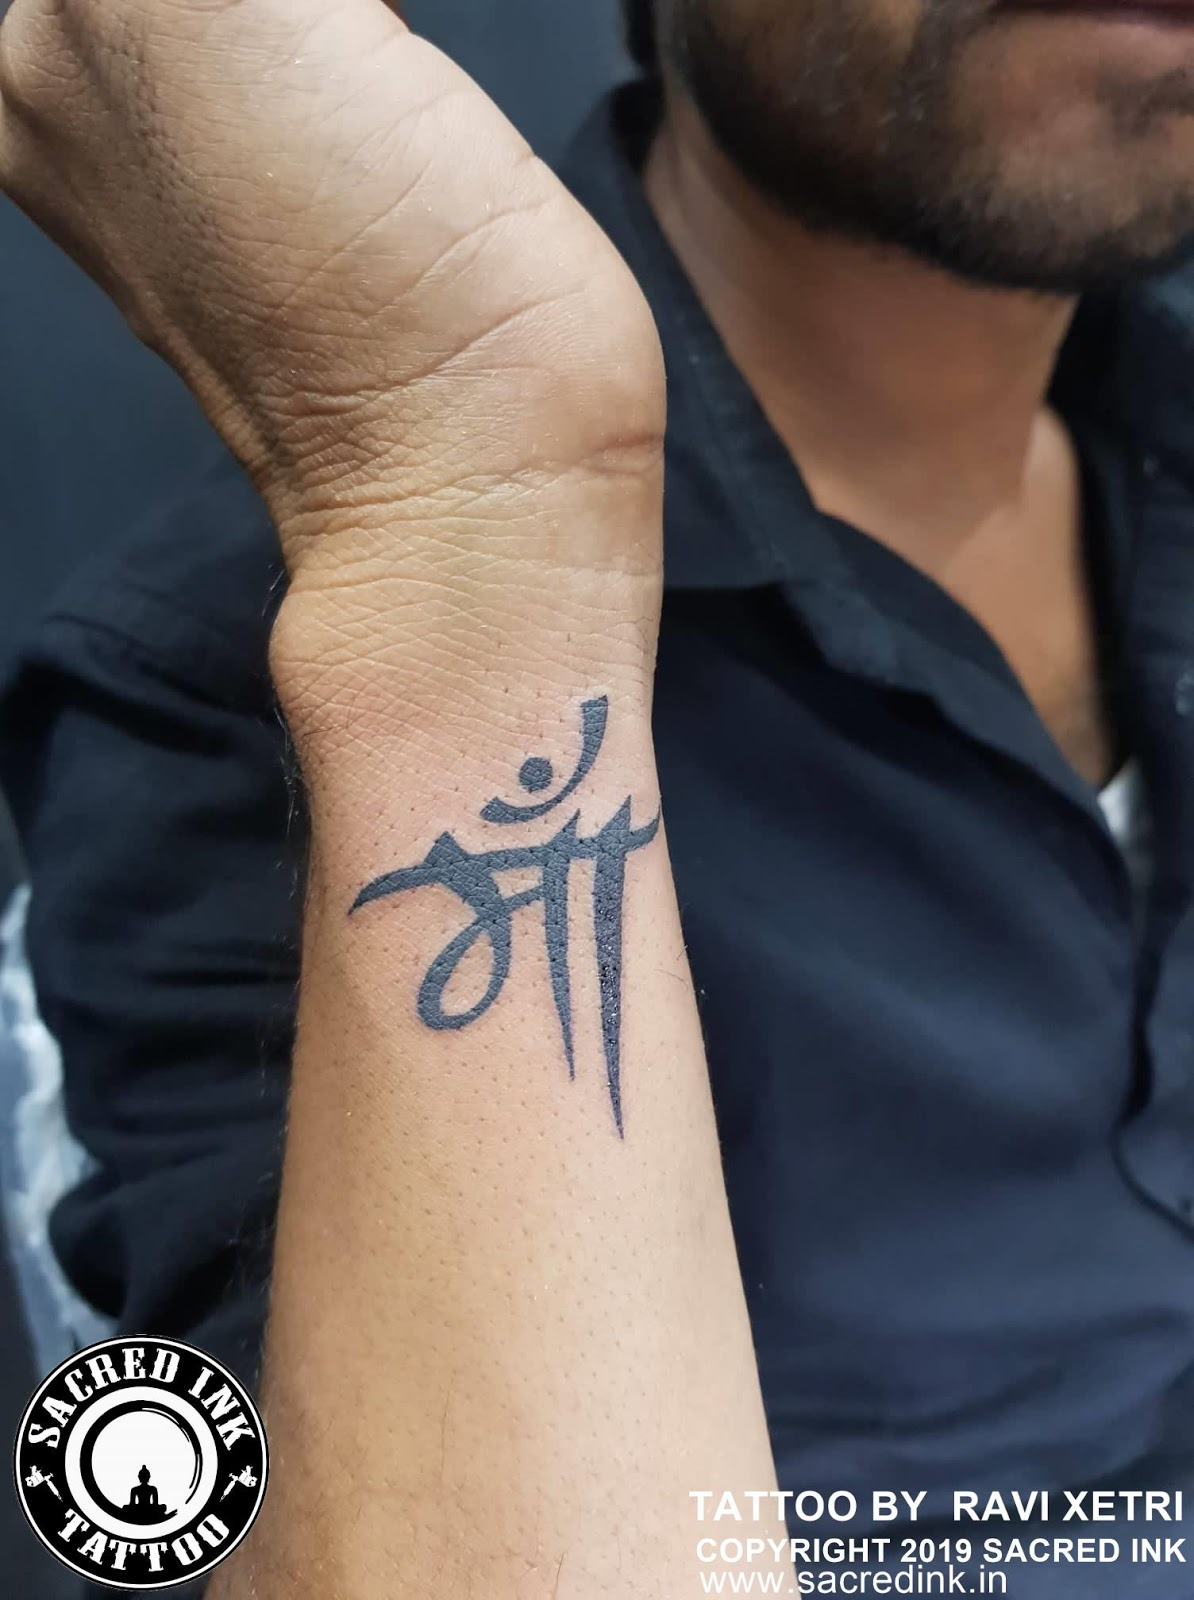 Tattoo Parlour In Asansol